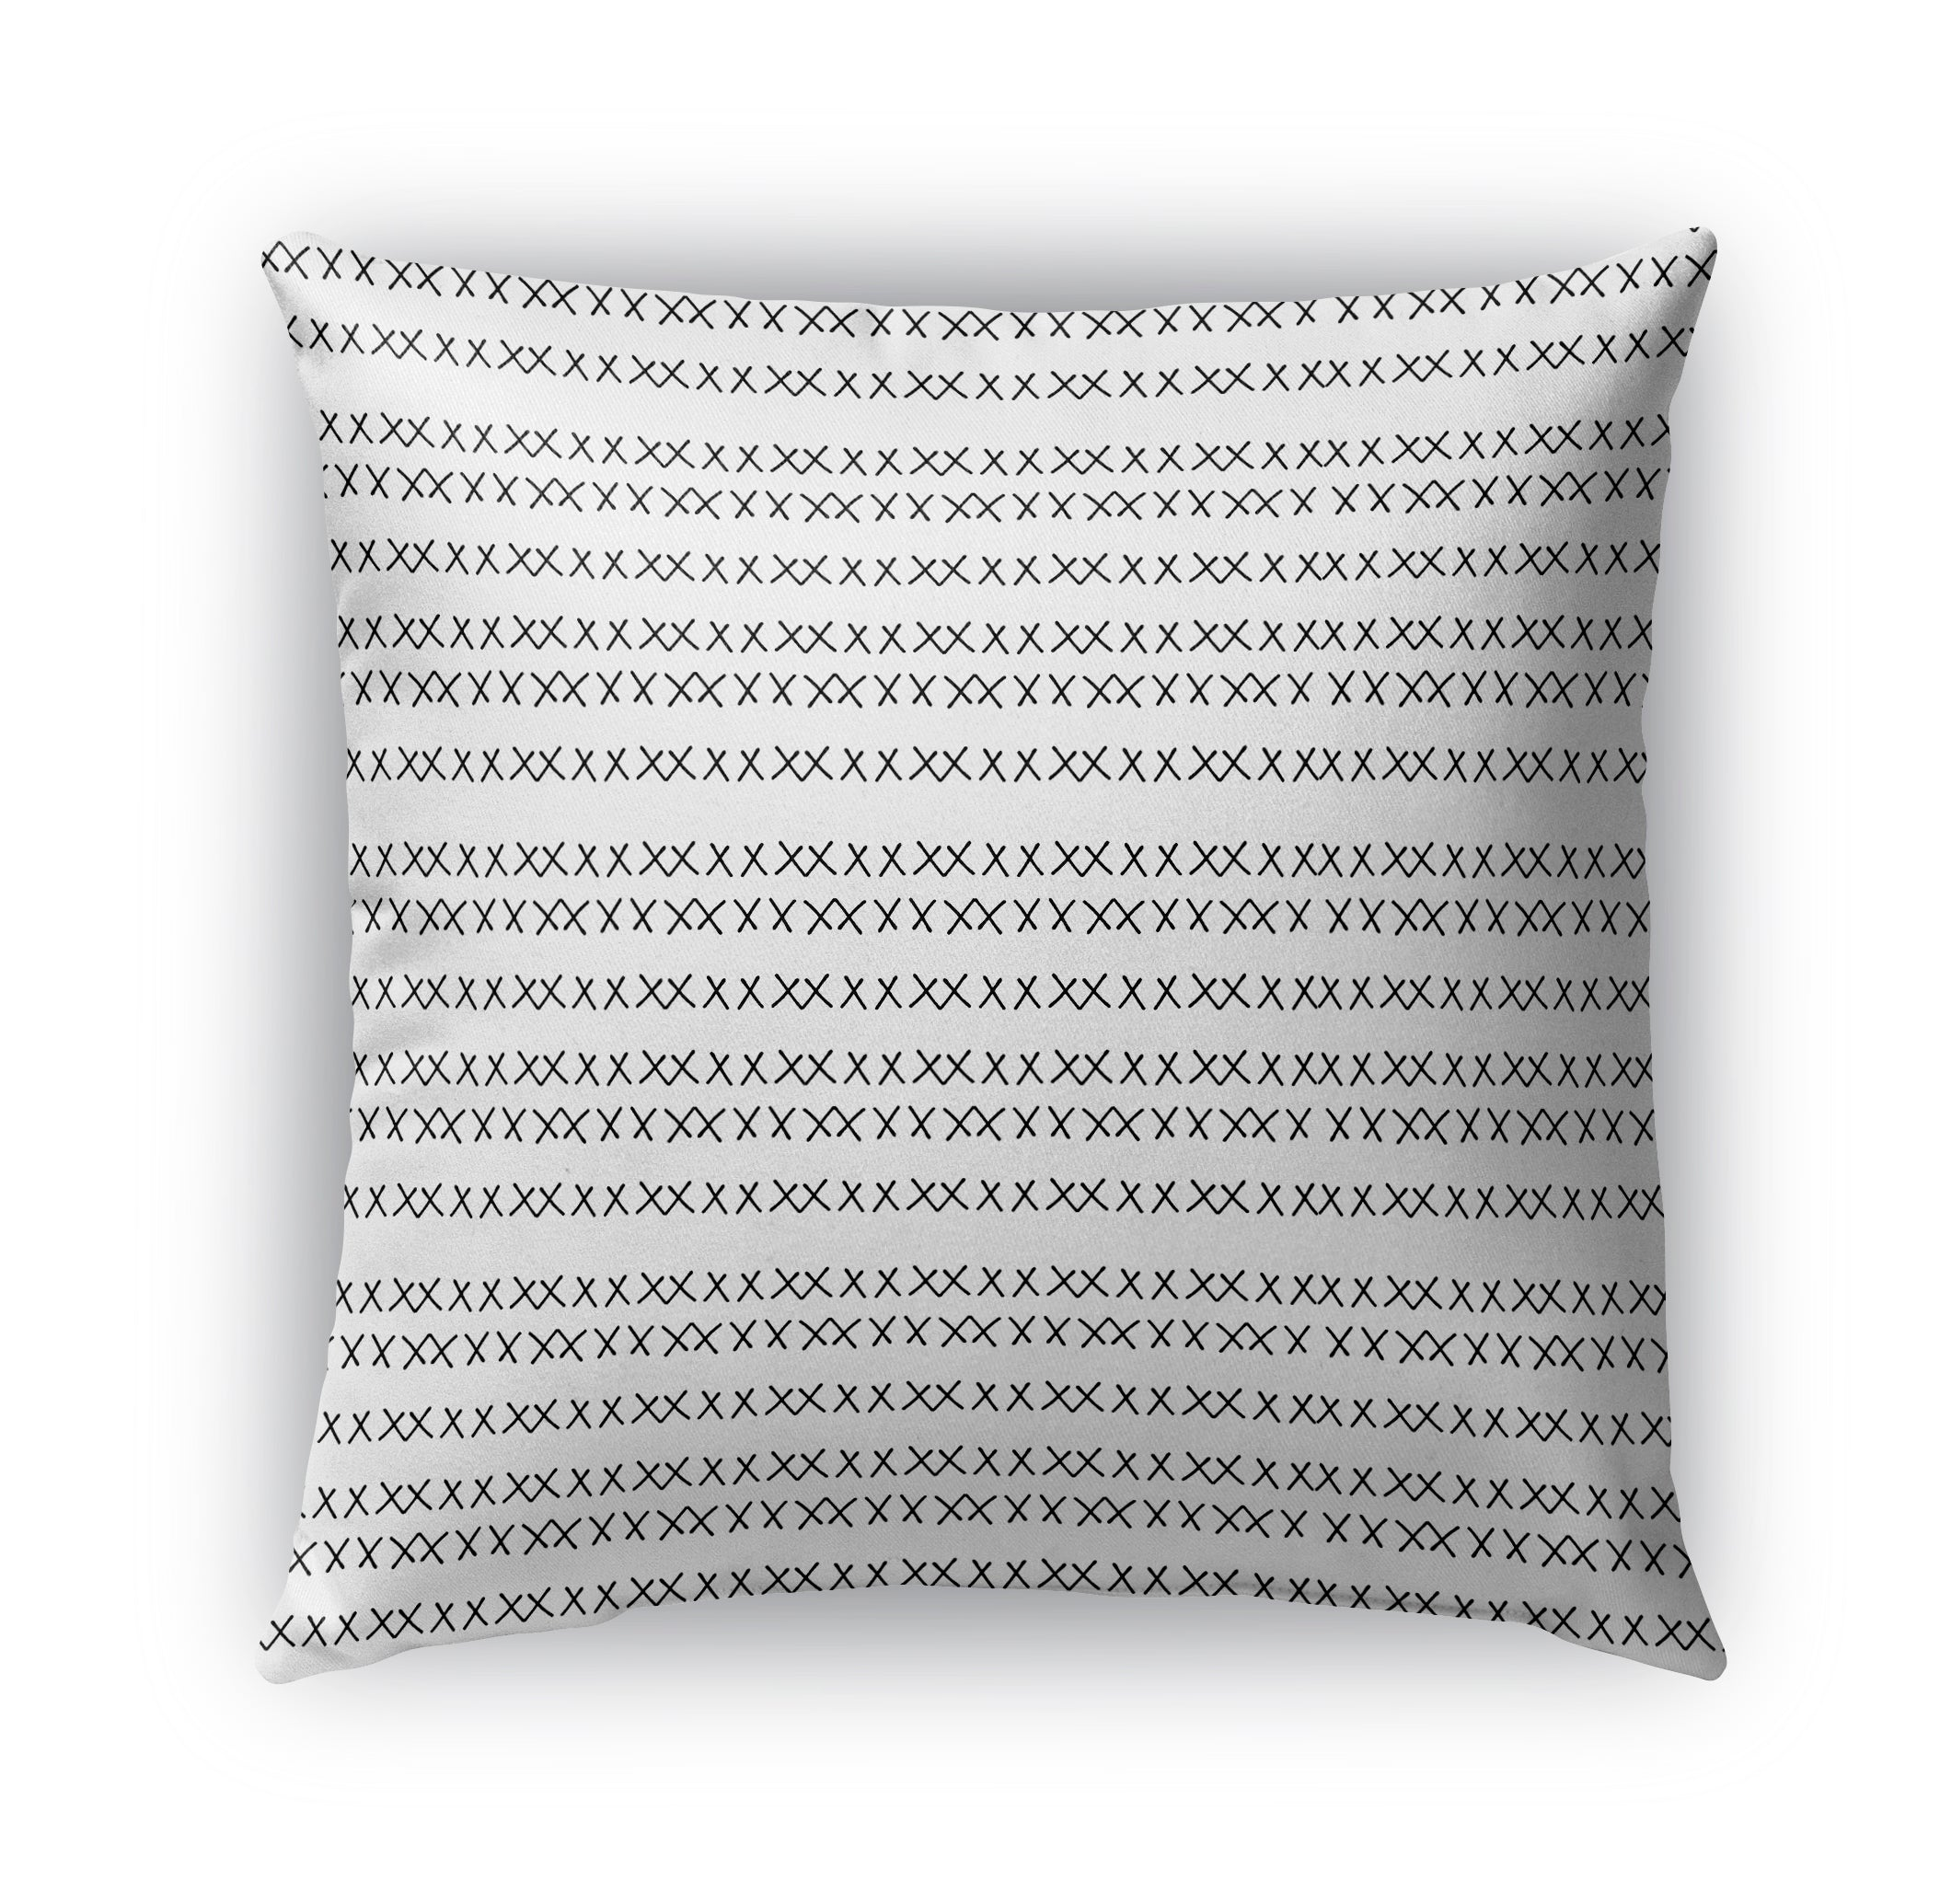 MARSEILLE Indoor|Outdoor Pillow By Michelle Parascandolo